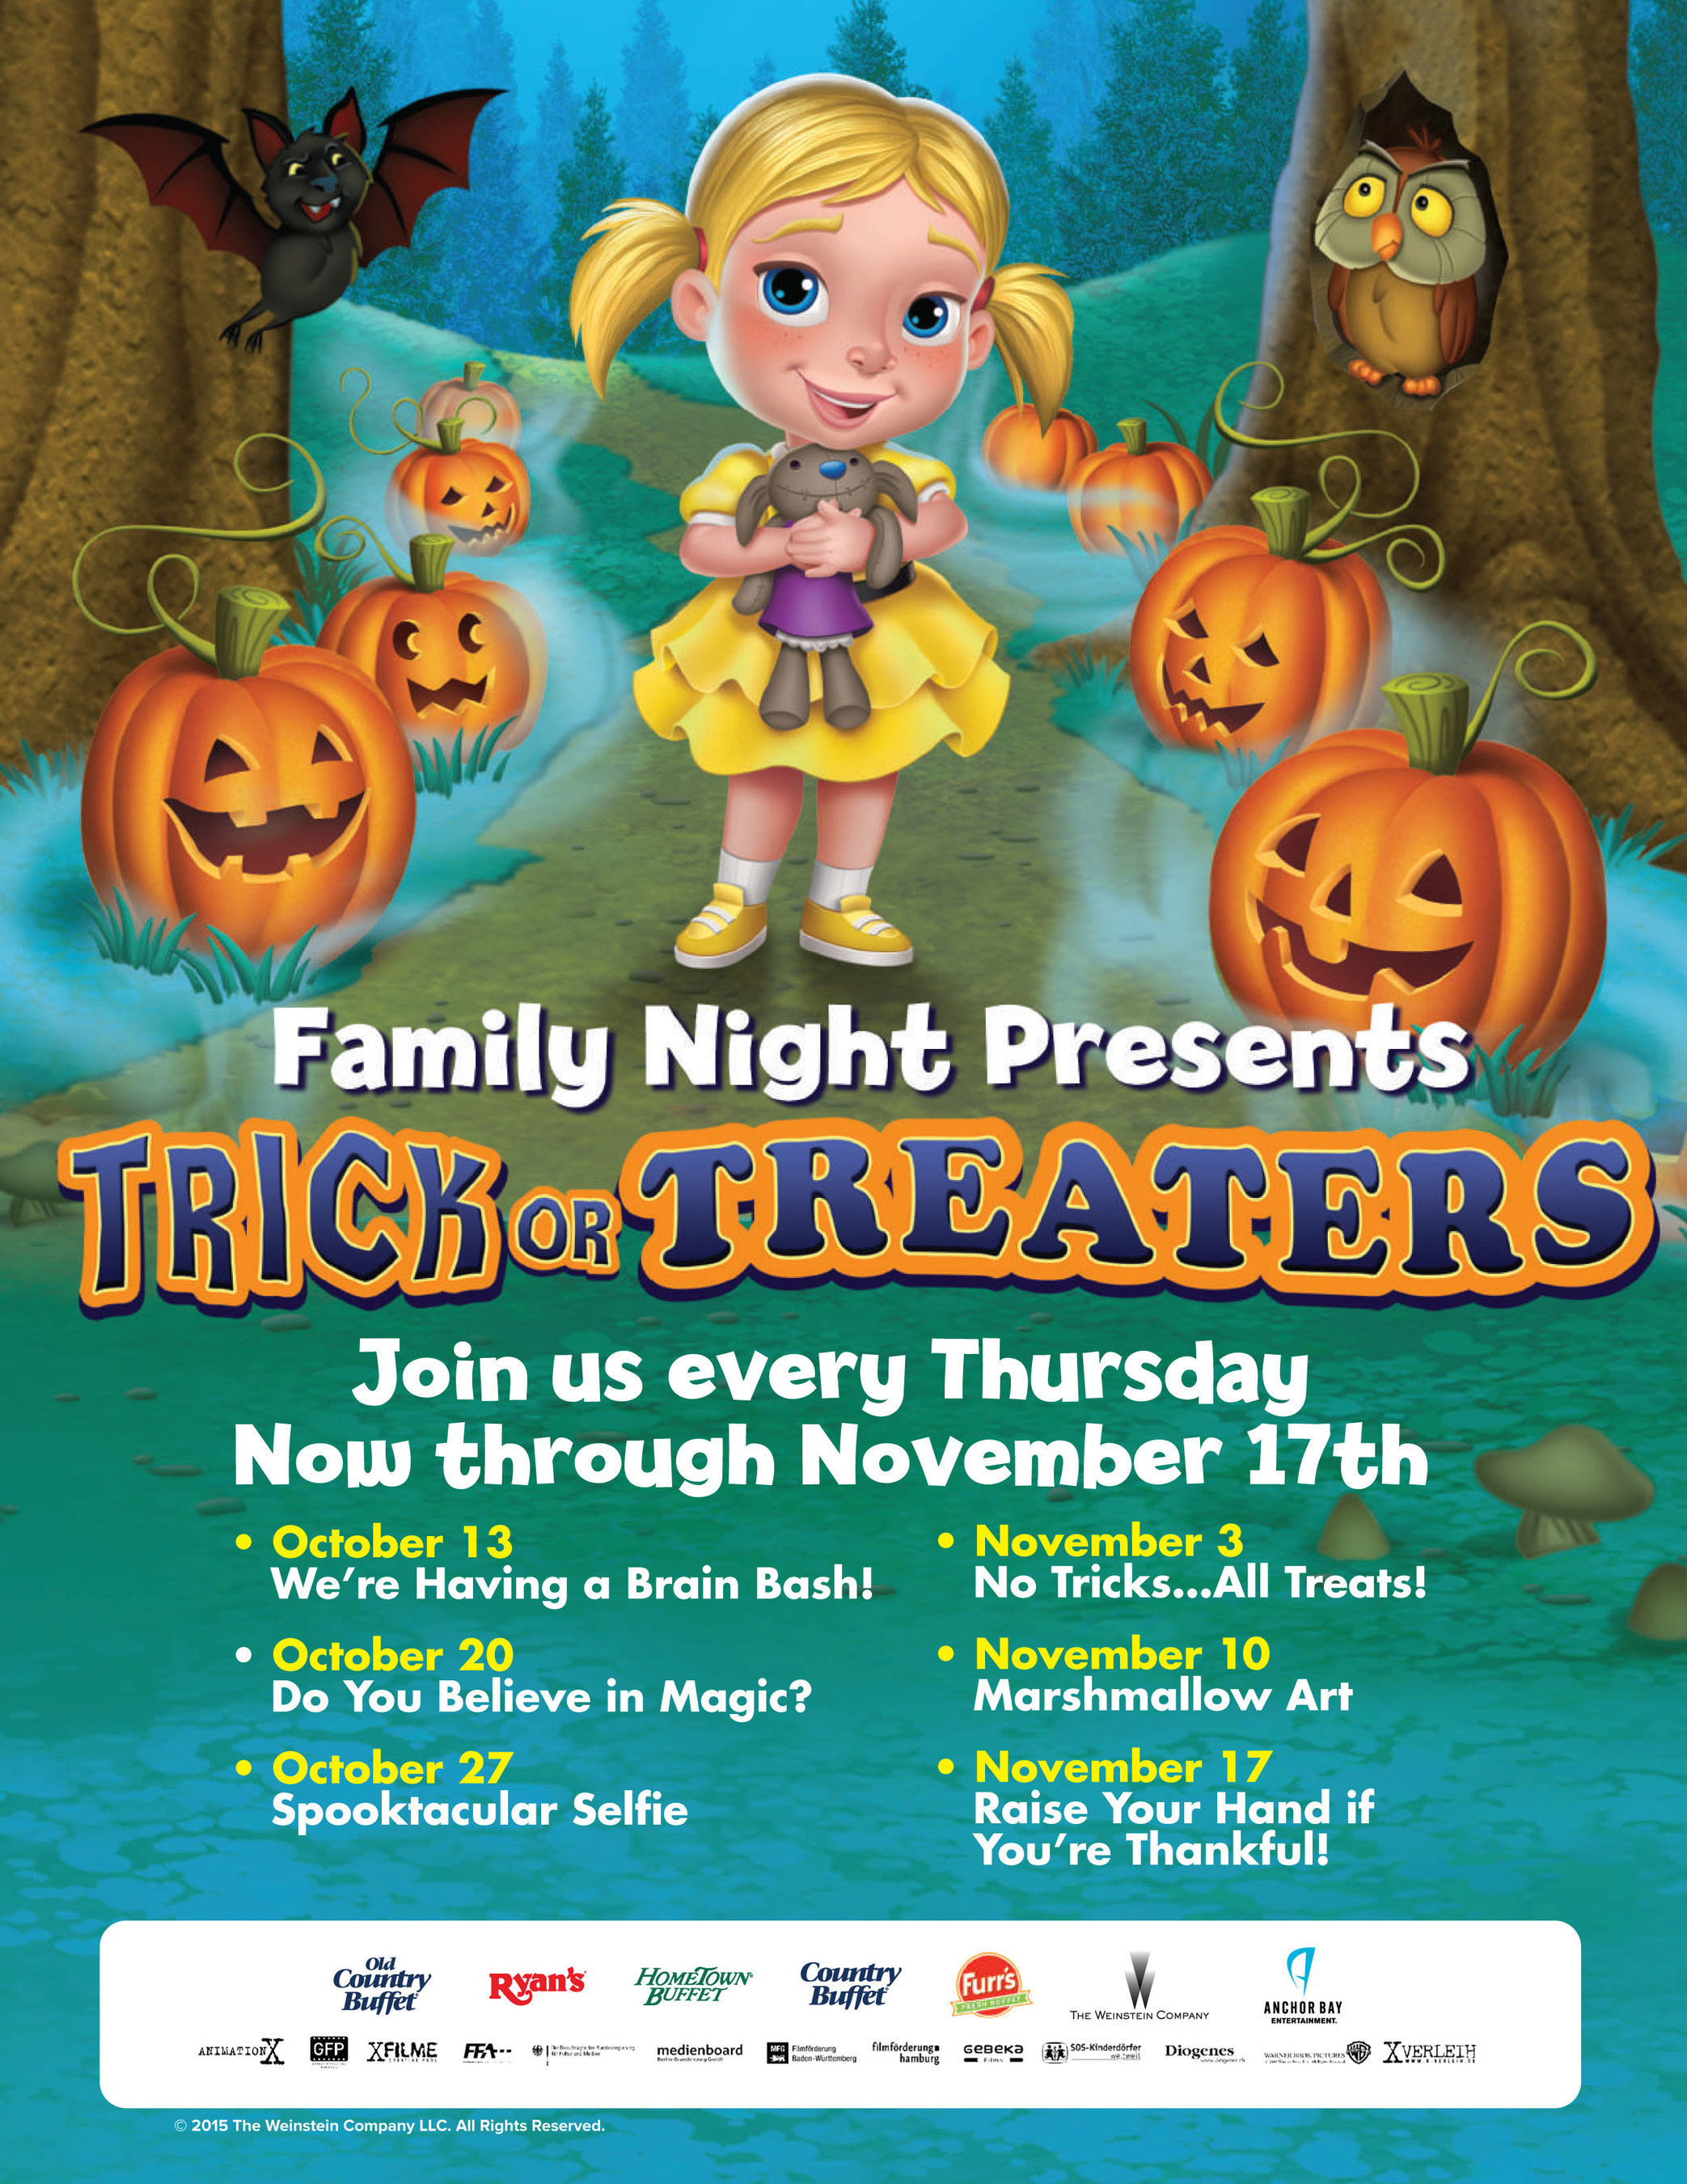 Ovation Brands' And Furr's Fresh Buffet' Offer Tricks And Treats With New Family Night Promotion, Starting October 13